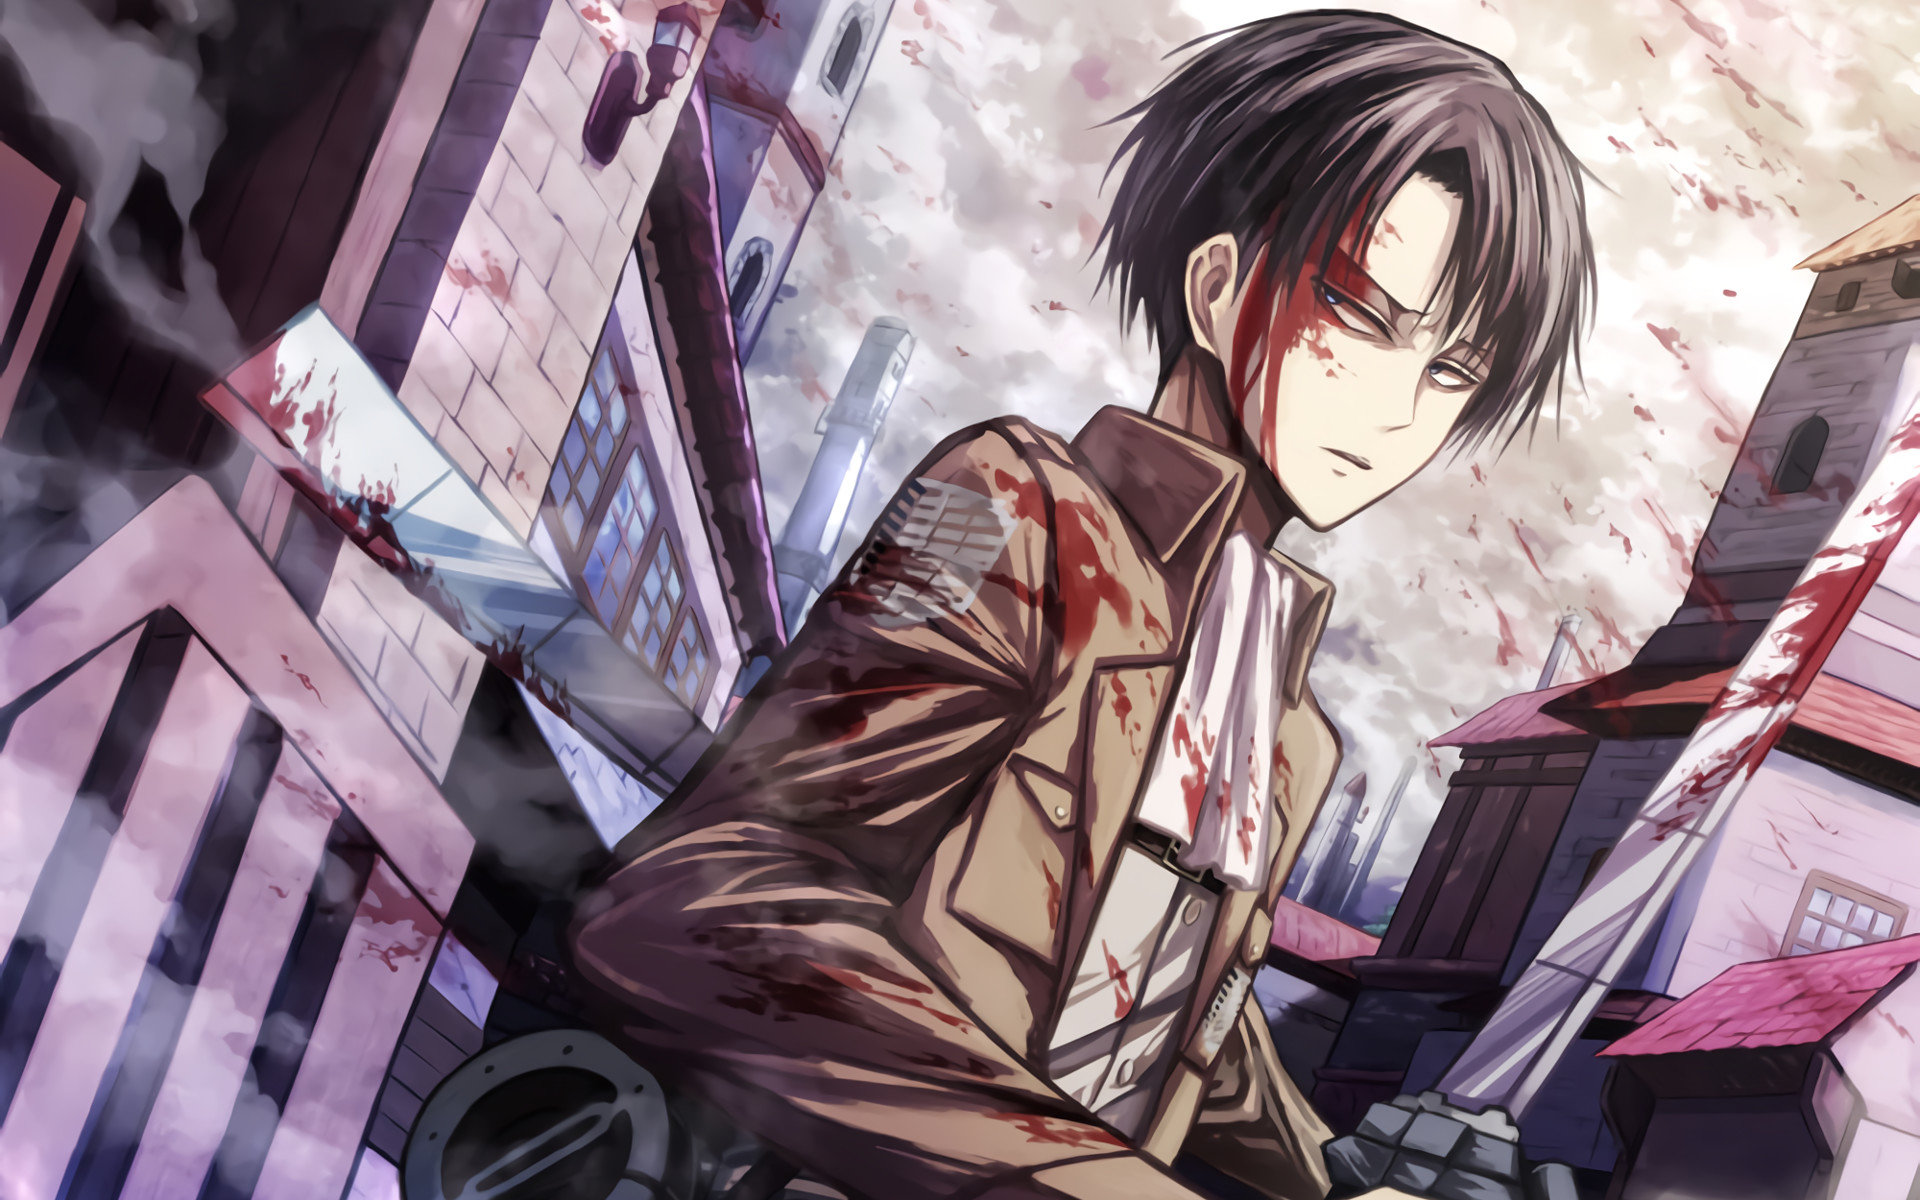 High Resolution Levi Ackerman Hd Wallpaper Id Levi Ackerman Wallpaper Hd 1920x1200 Wallpaper Teahub Io